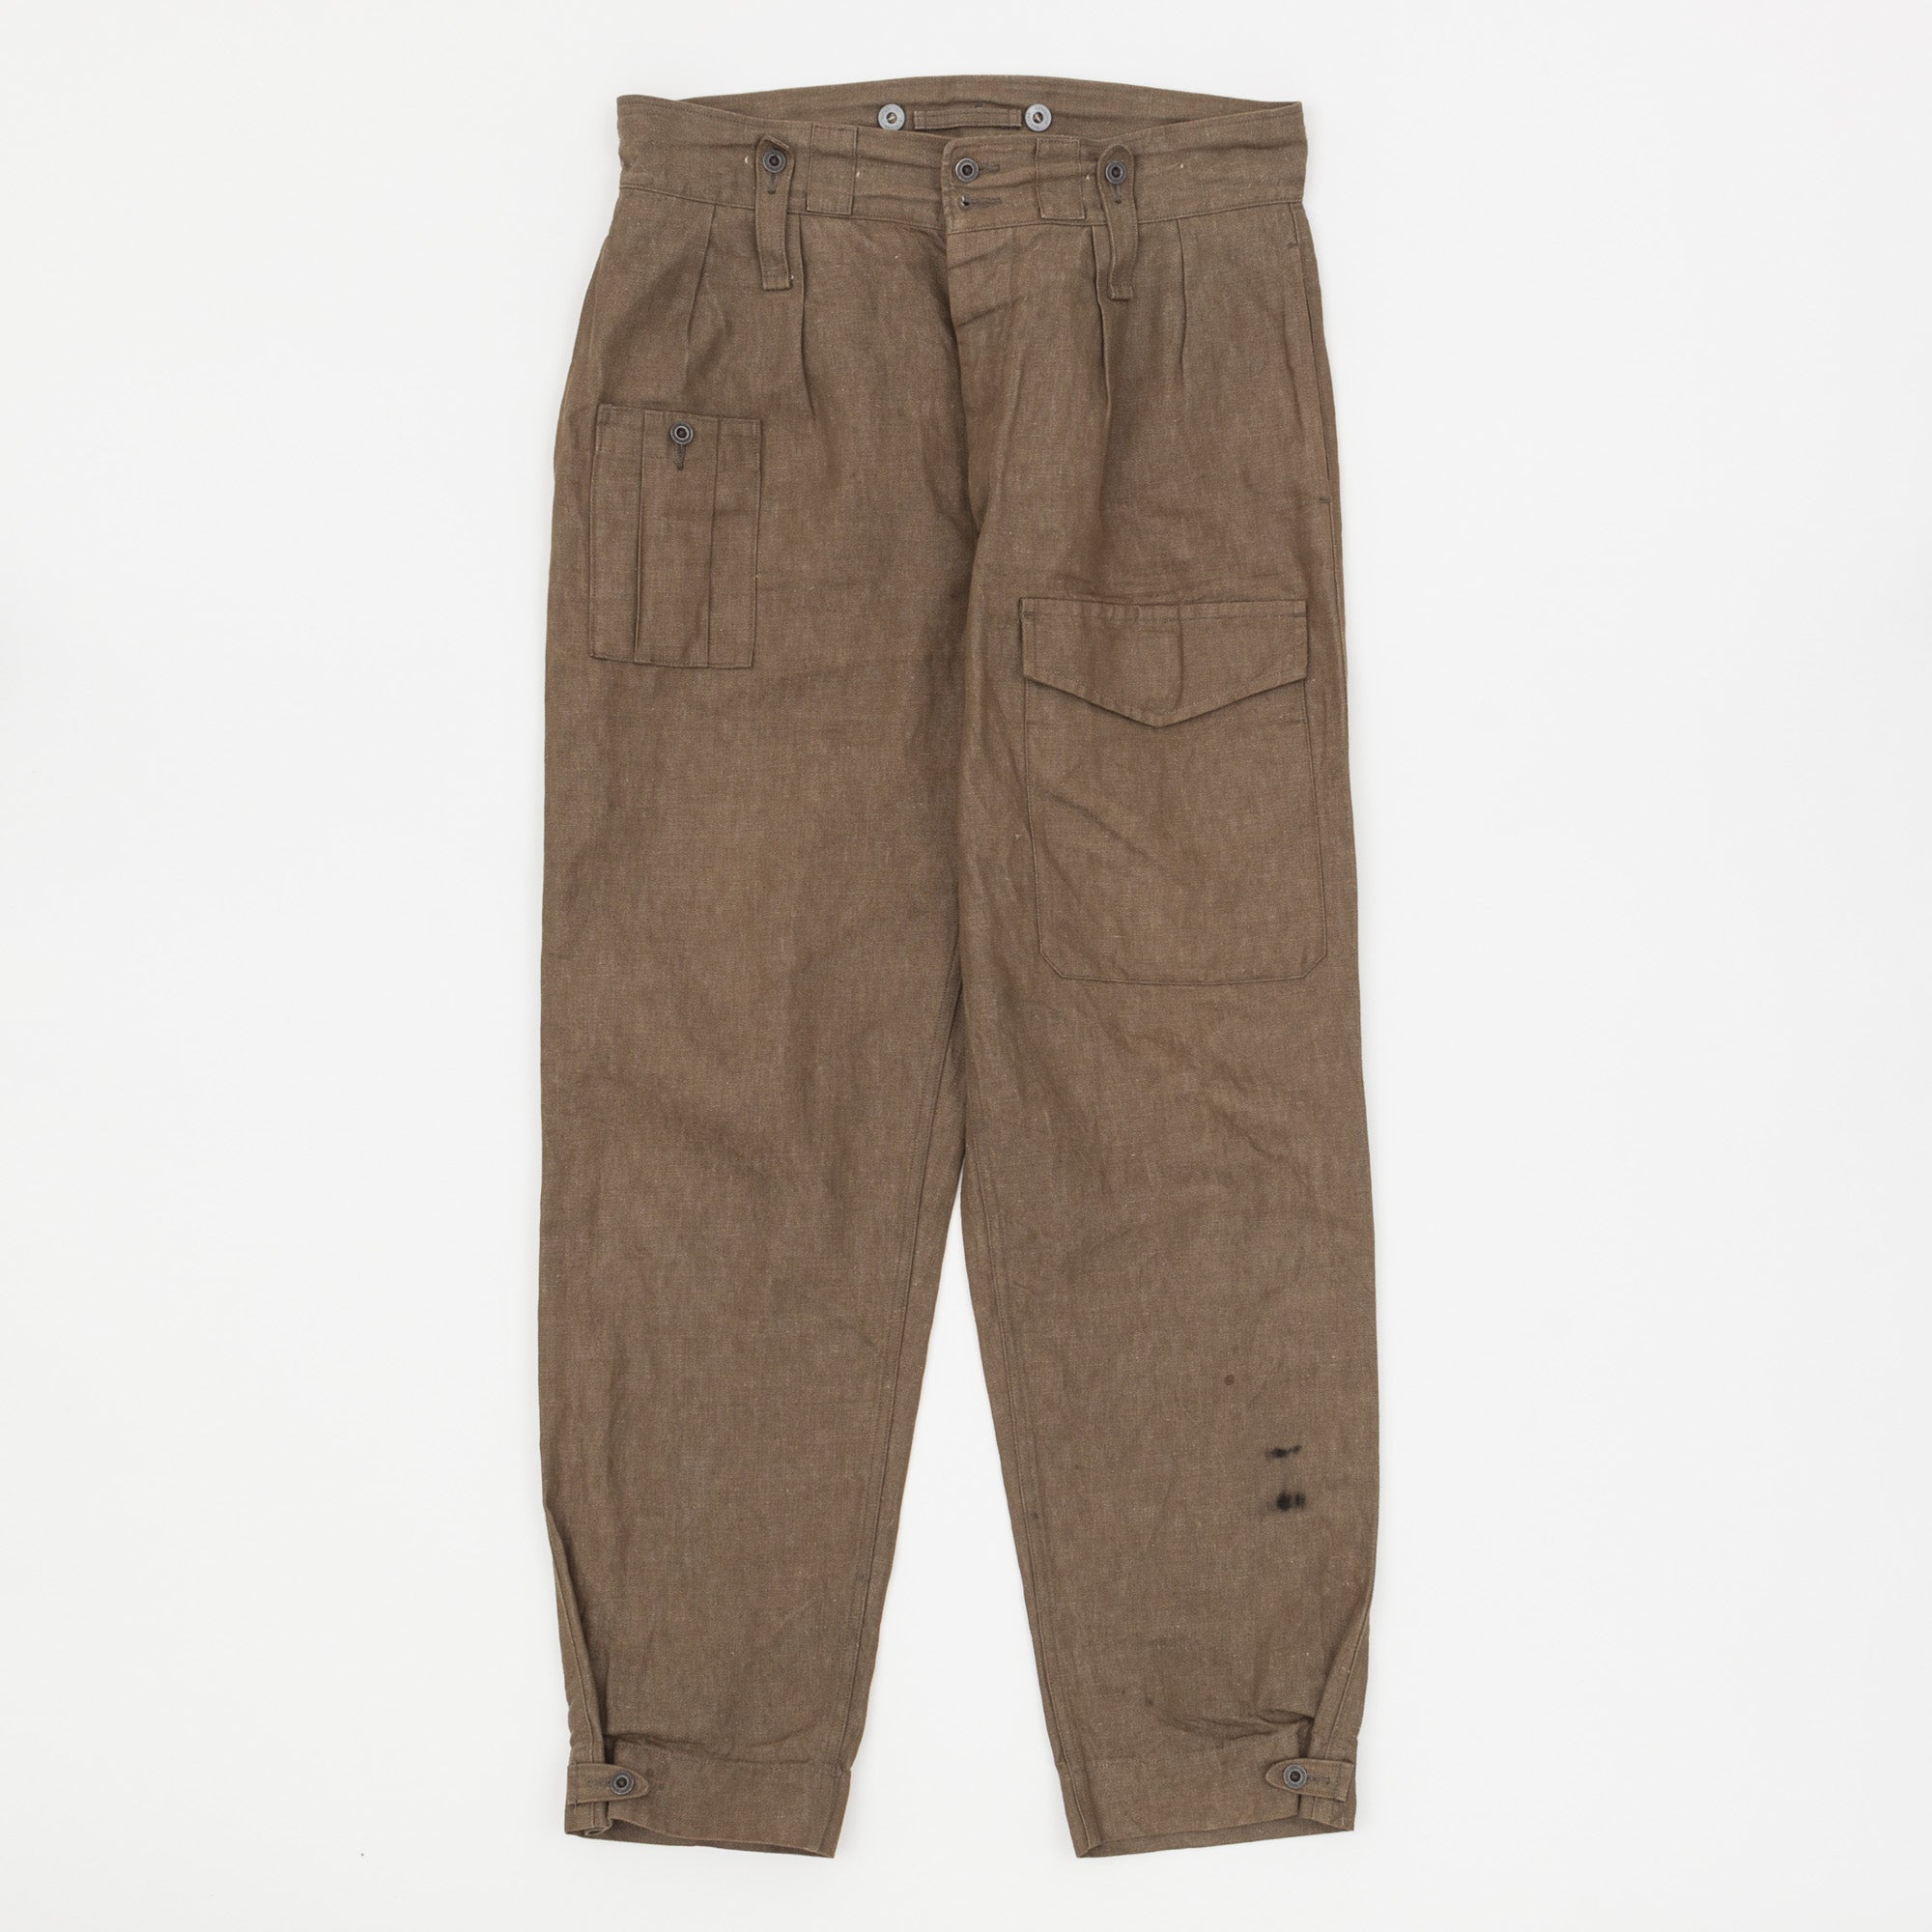 Nigel Cabourn Mainline Battle Dress Trousers